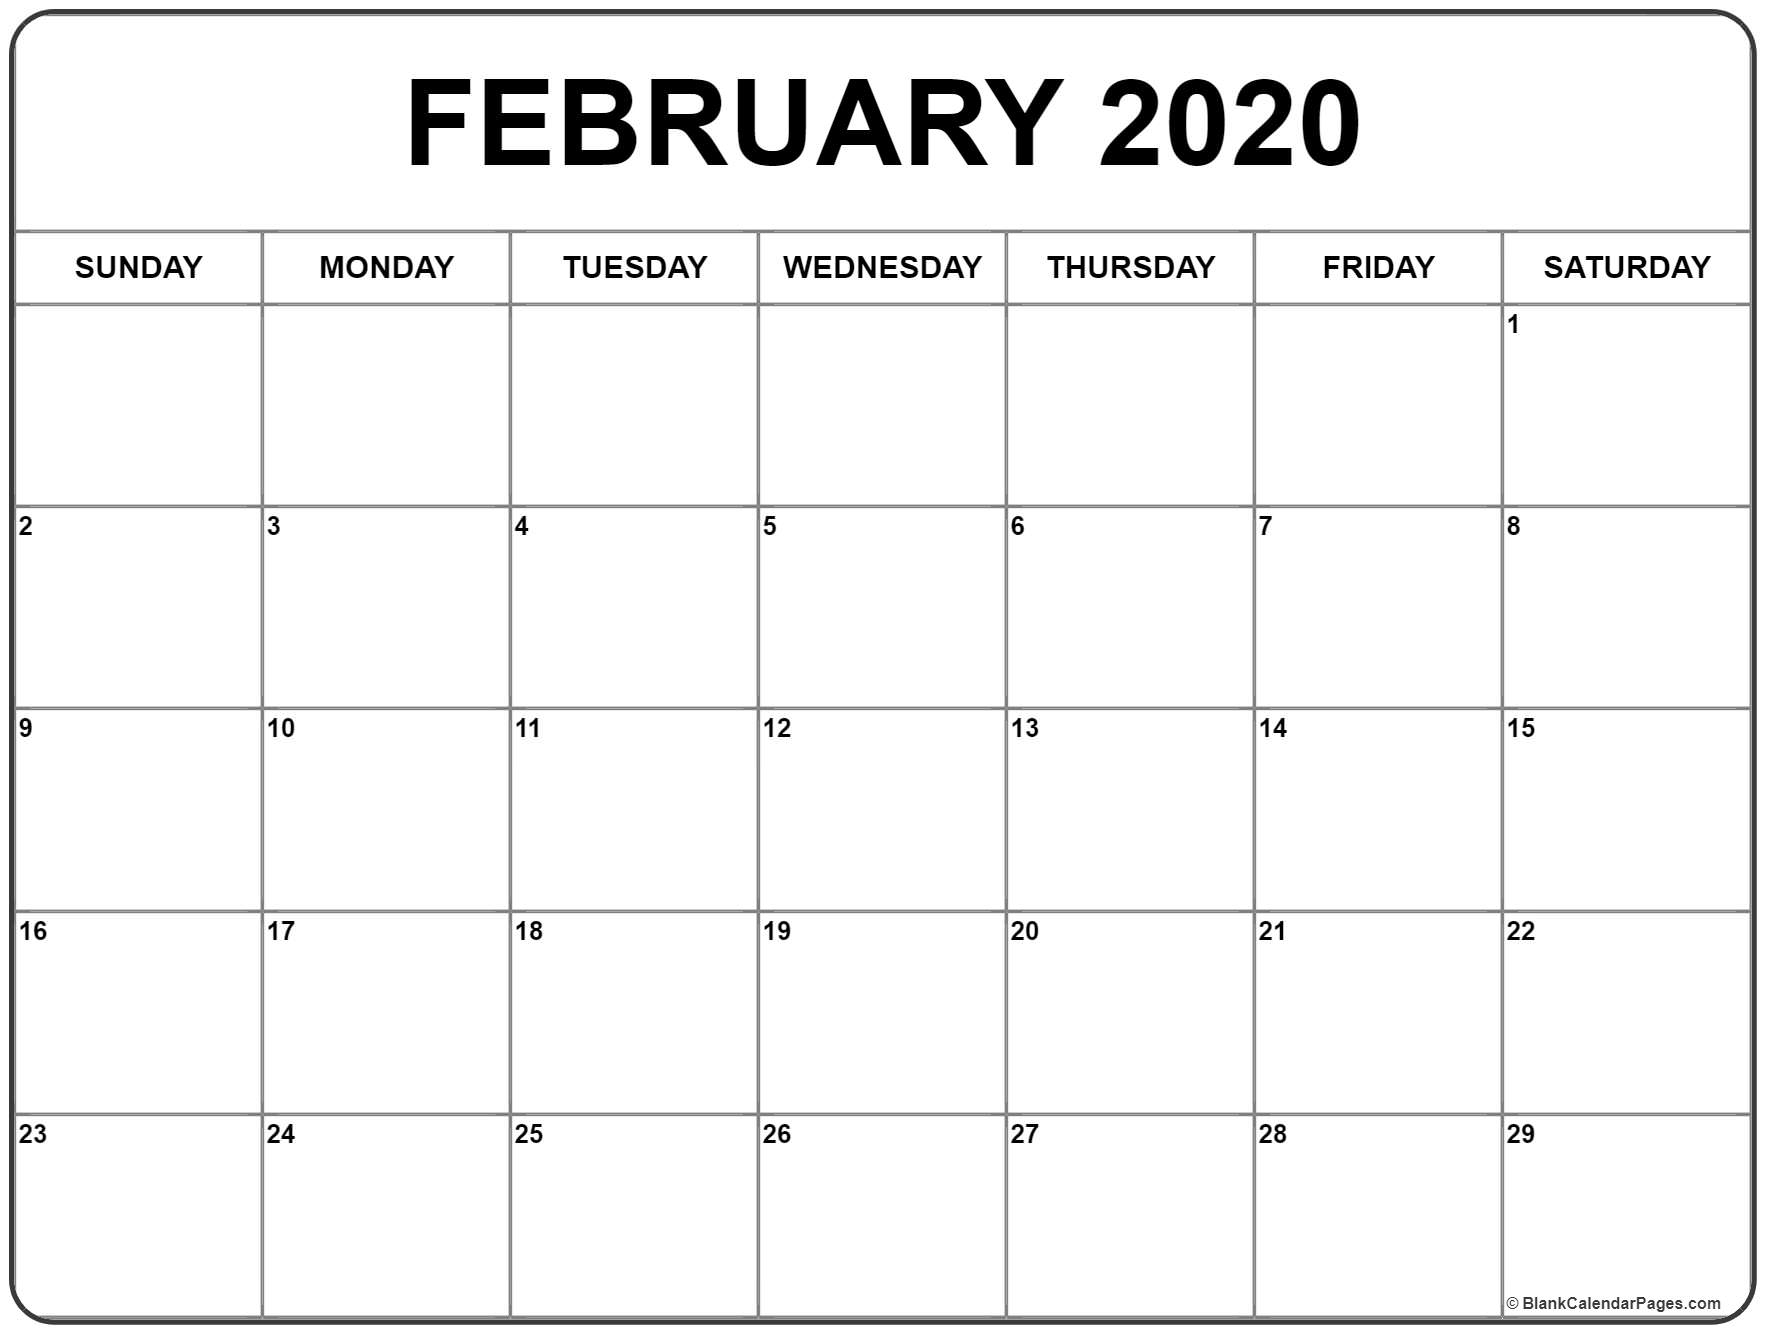 February 2020 Calendar | Free Printable Monthly Calendars in Free 2020 Printable Calendars Without Downloading